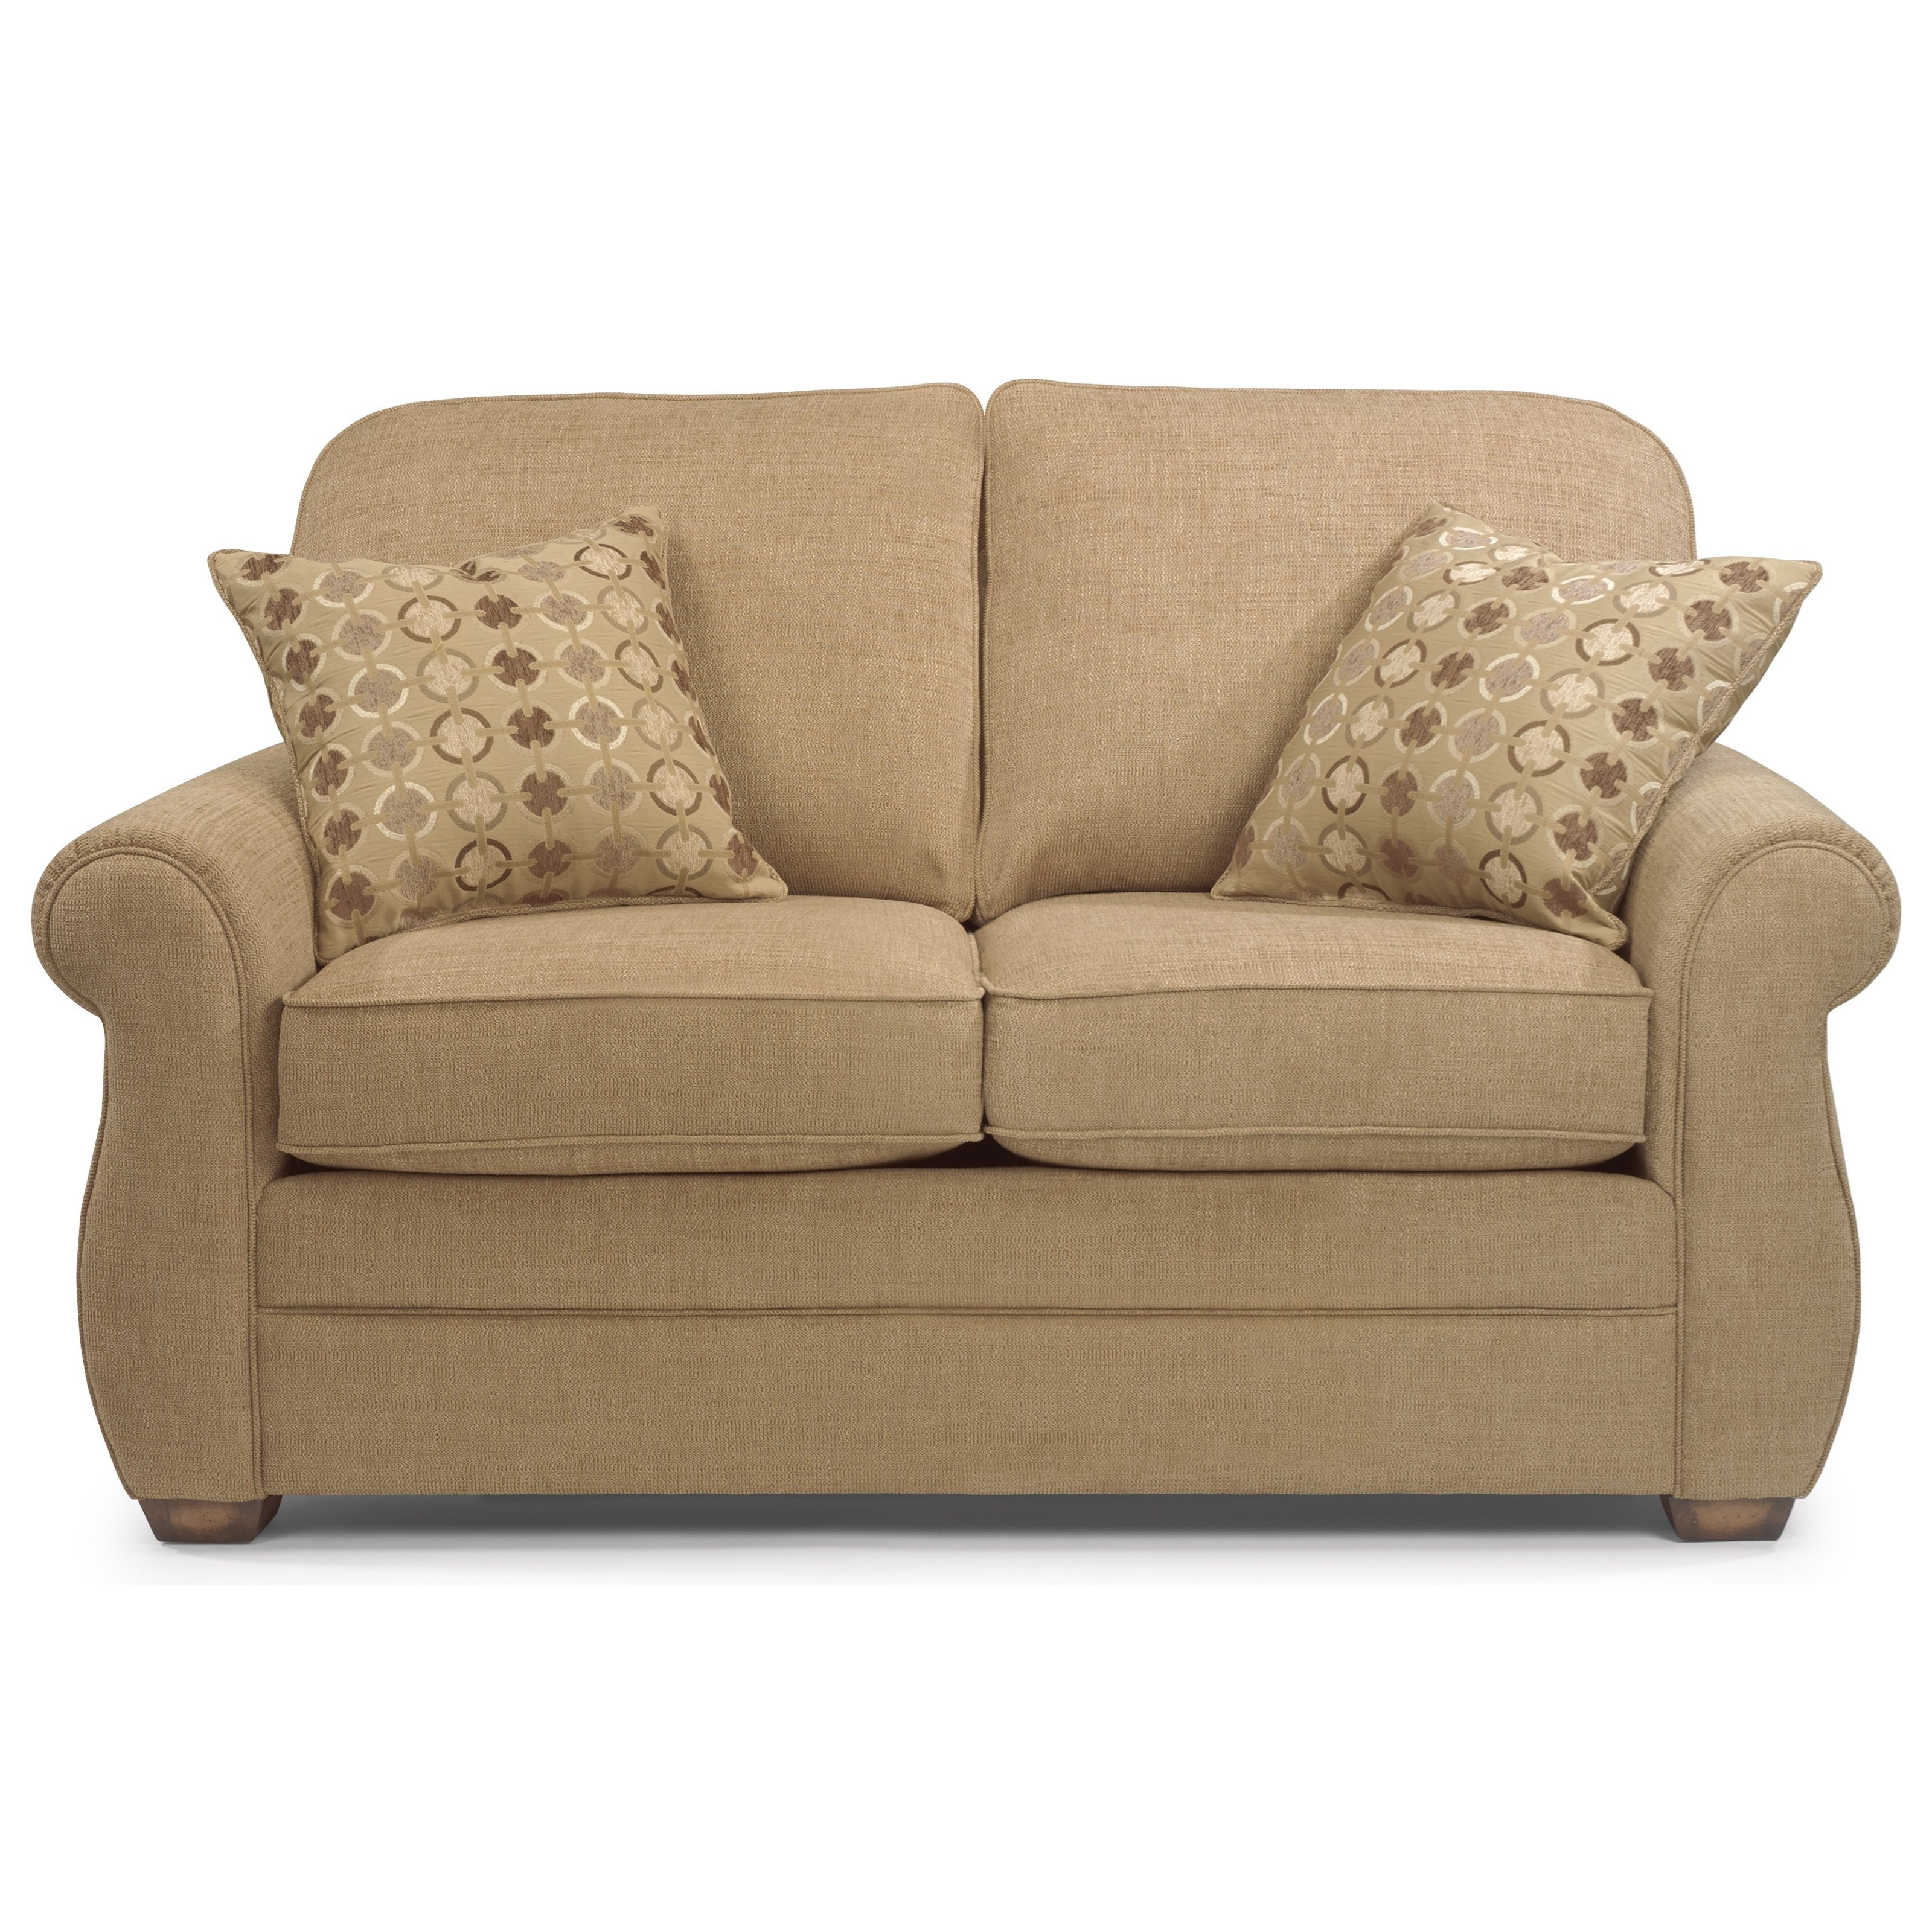 Flexsteel Whitney Love Seat with Turned Arms and Wood  : products2Fflexsteel2Fcolor2Fwhitney2056432056445643 20 b1 from www.dunkandbright.com size 3200 x 3200 jpeg 1551kB